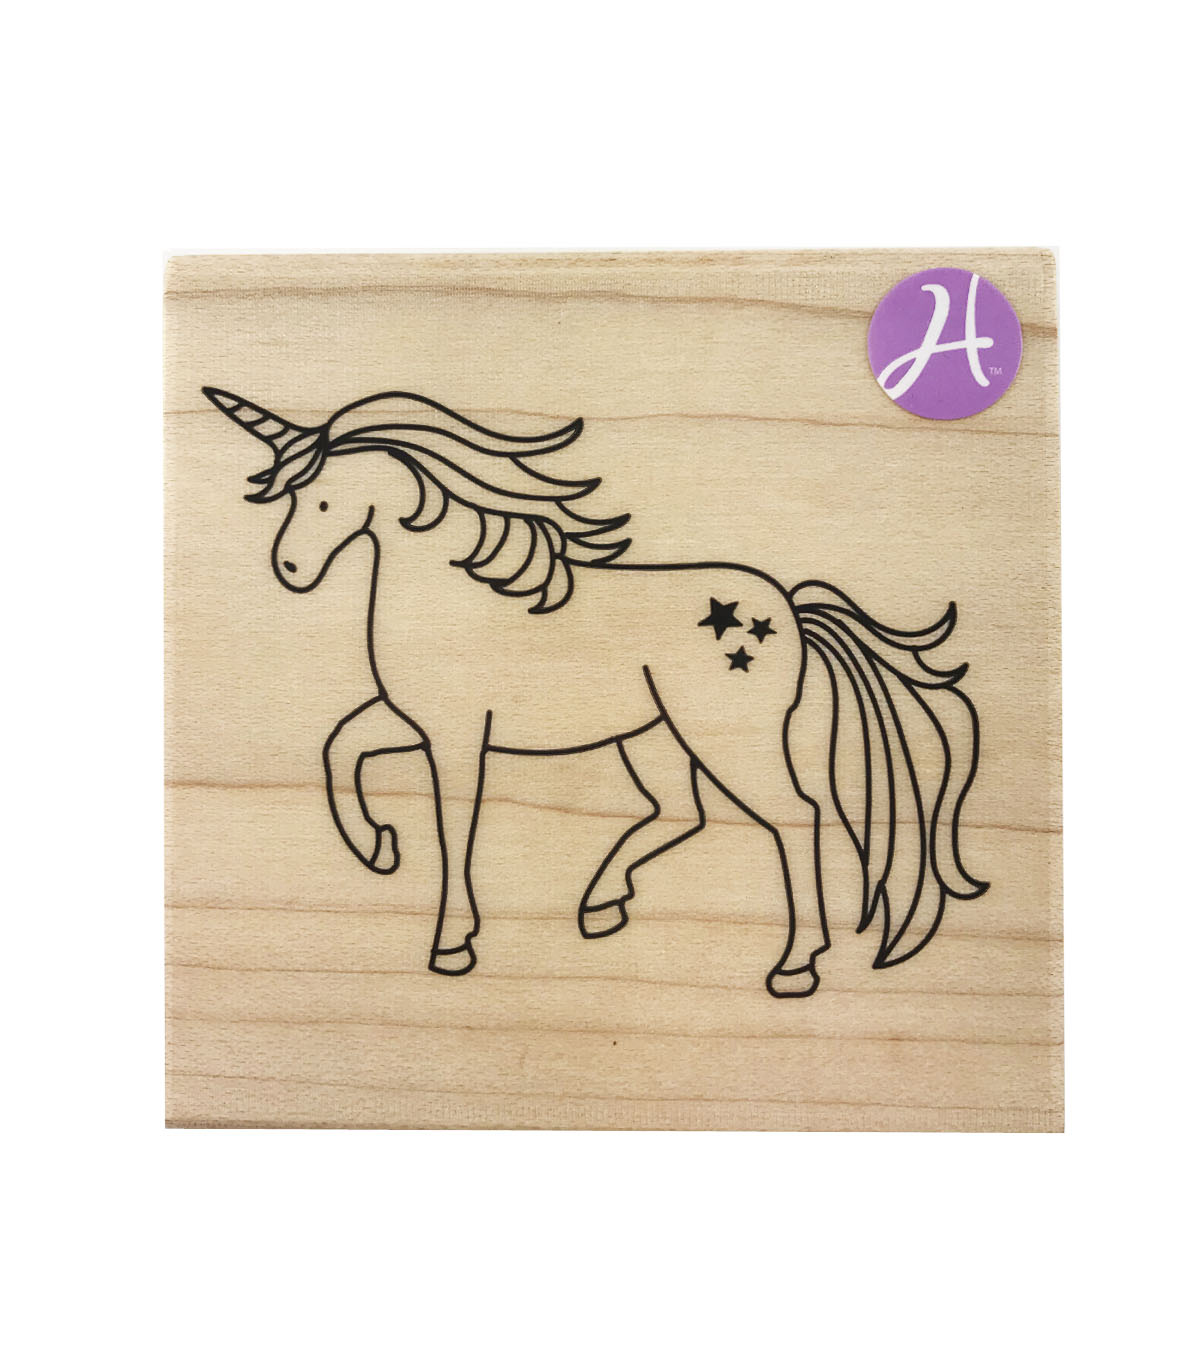 Hampton Art 3\u0027\u0027x3\u0027\u0027 Wood Mounted Rubber Stamp-Unicorn